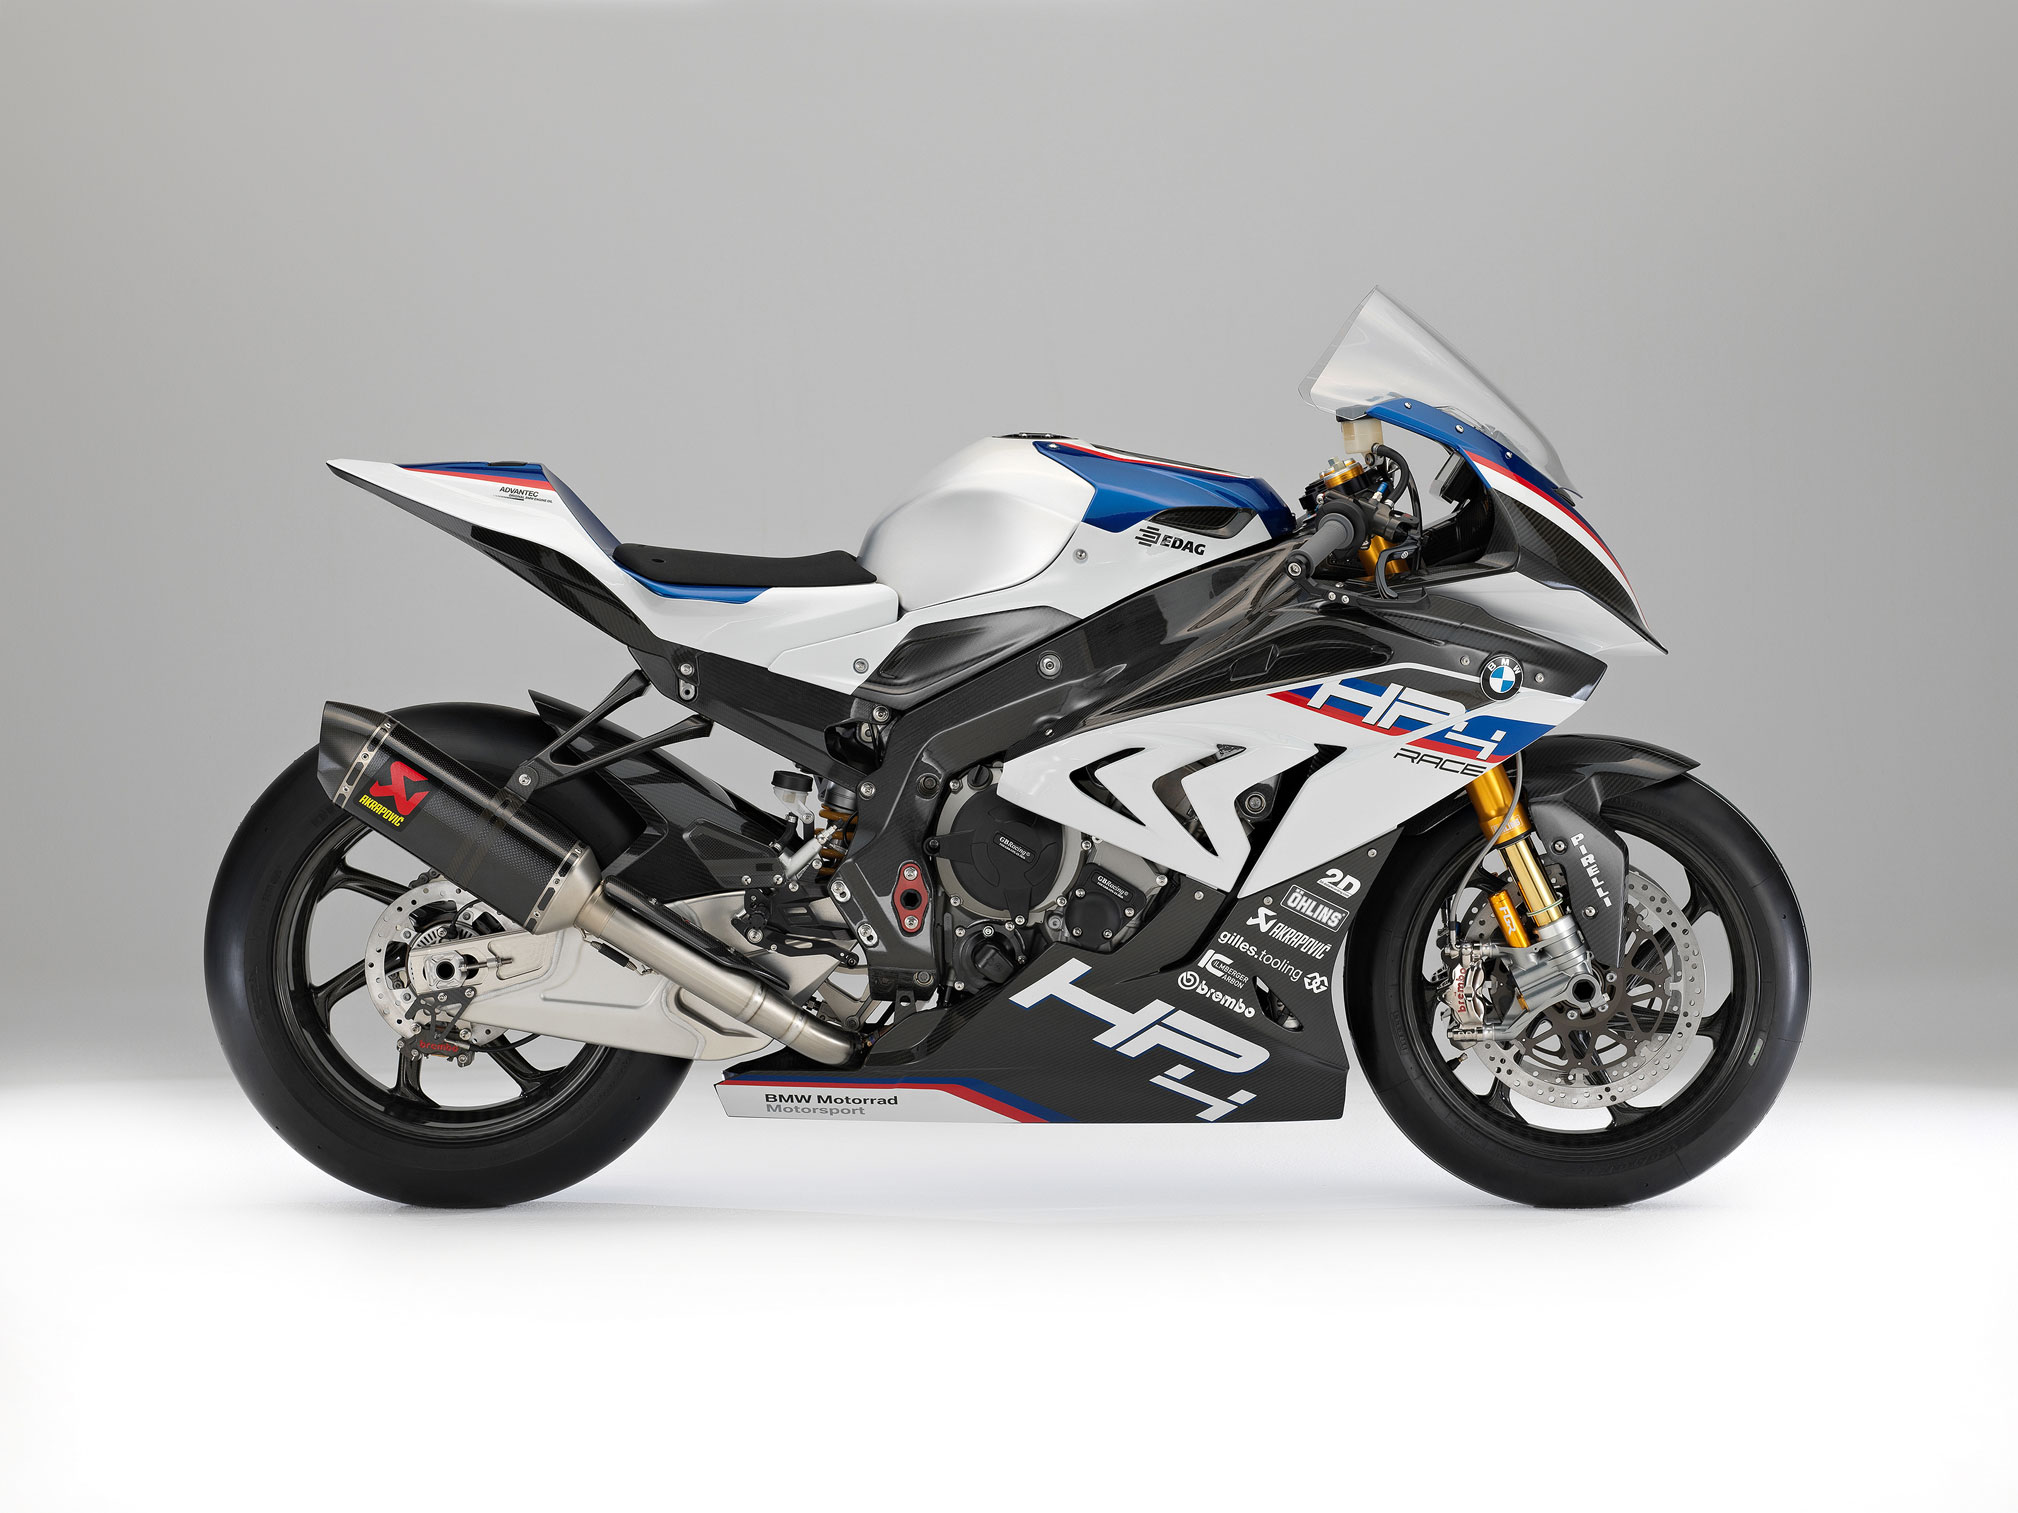 bmw motorcycles developing essay Bmw motorcycles production car tv loading bmw self driving motorbike review bmw vision 100 bmw self balancing motorcycle review carjam - duration: 7:53 14:50 bmw s 1000 rr superbike - production, development and testing - duration: 31:12 car tv 454,062 views 31:12.